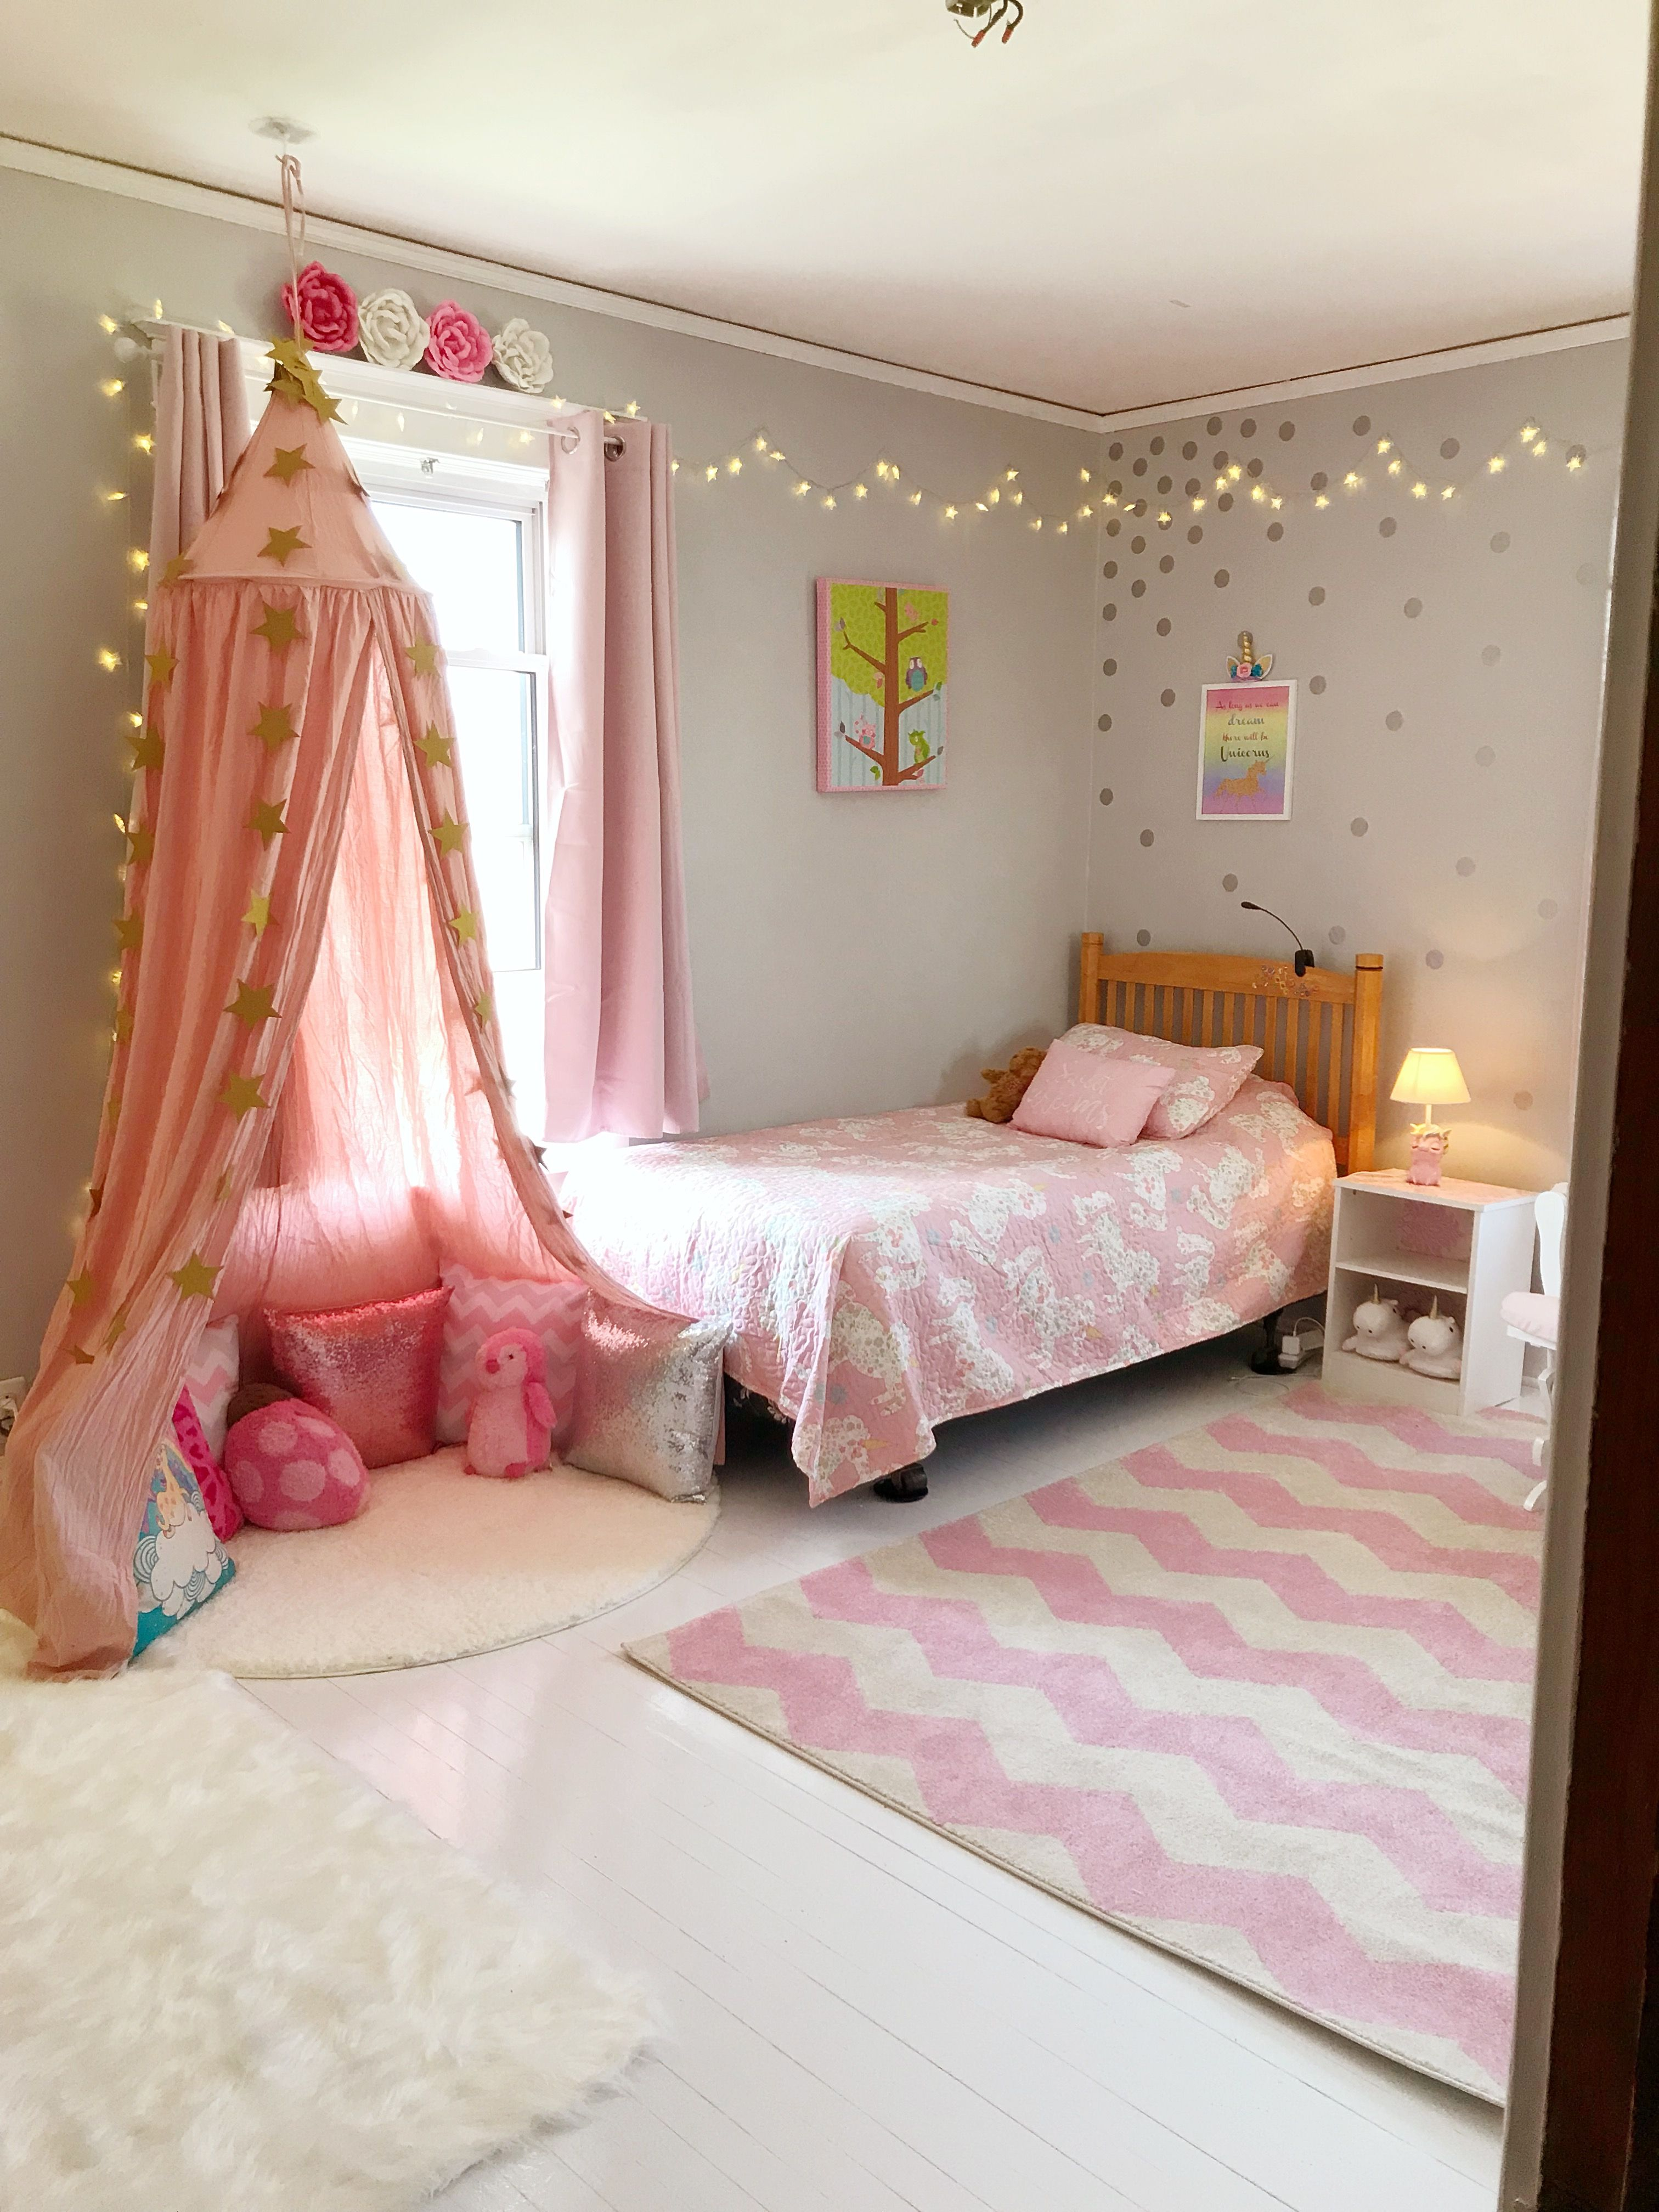 S Bedroom Ideas Cute Room Decor Pink And Gray White Wood Floors Unicorn Little